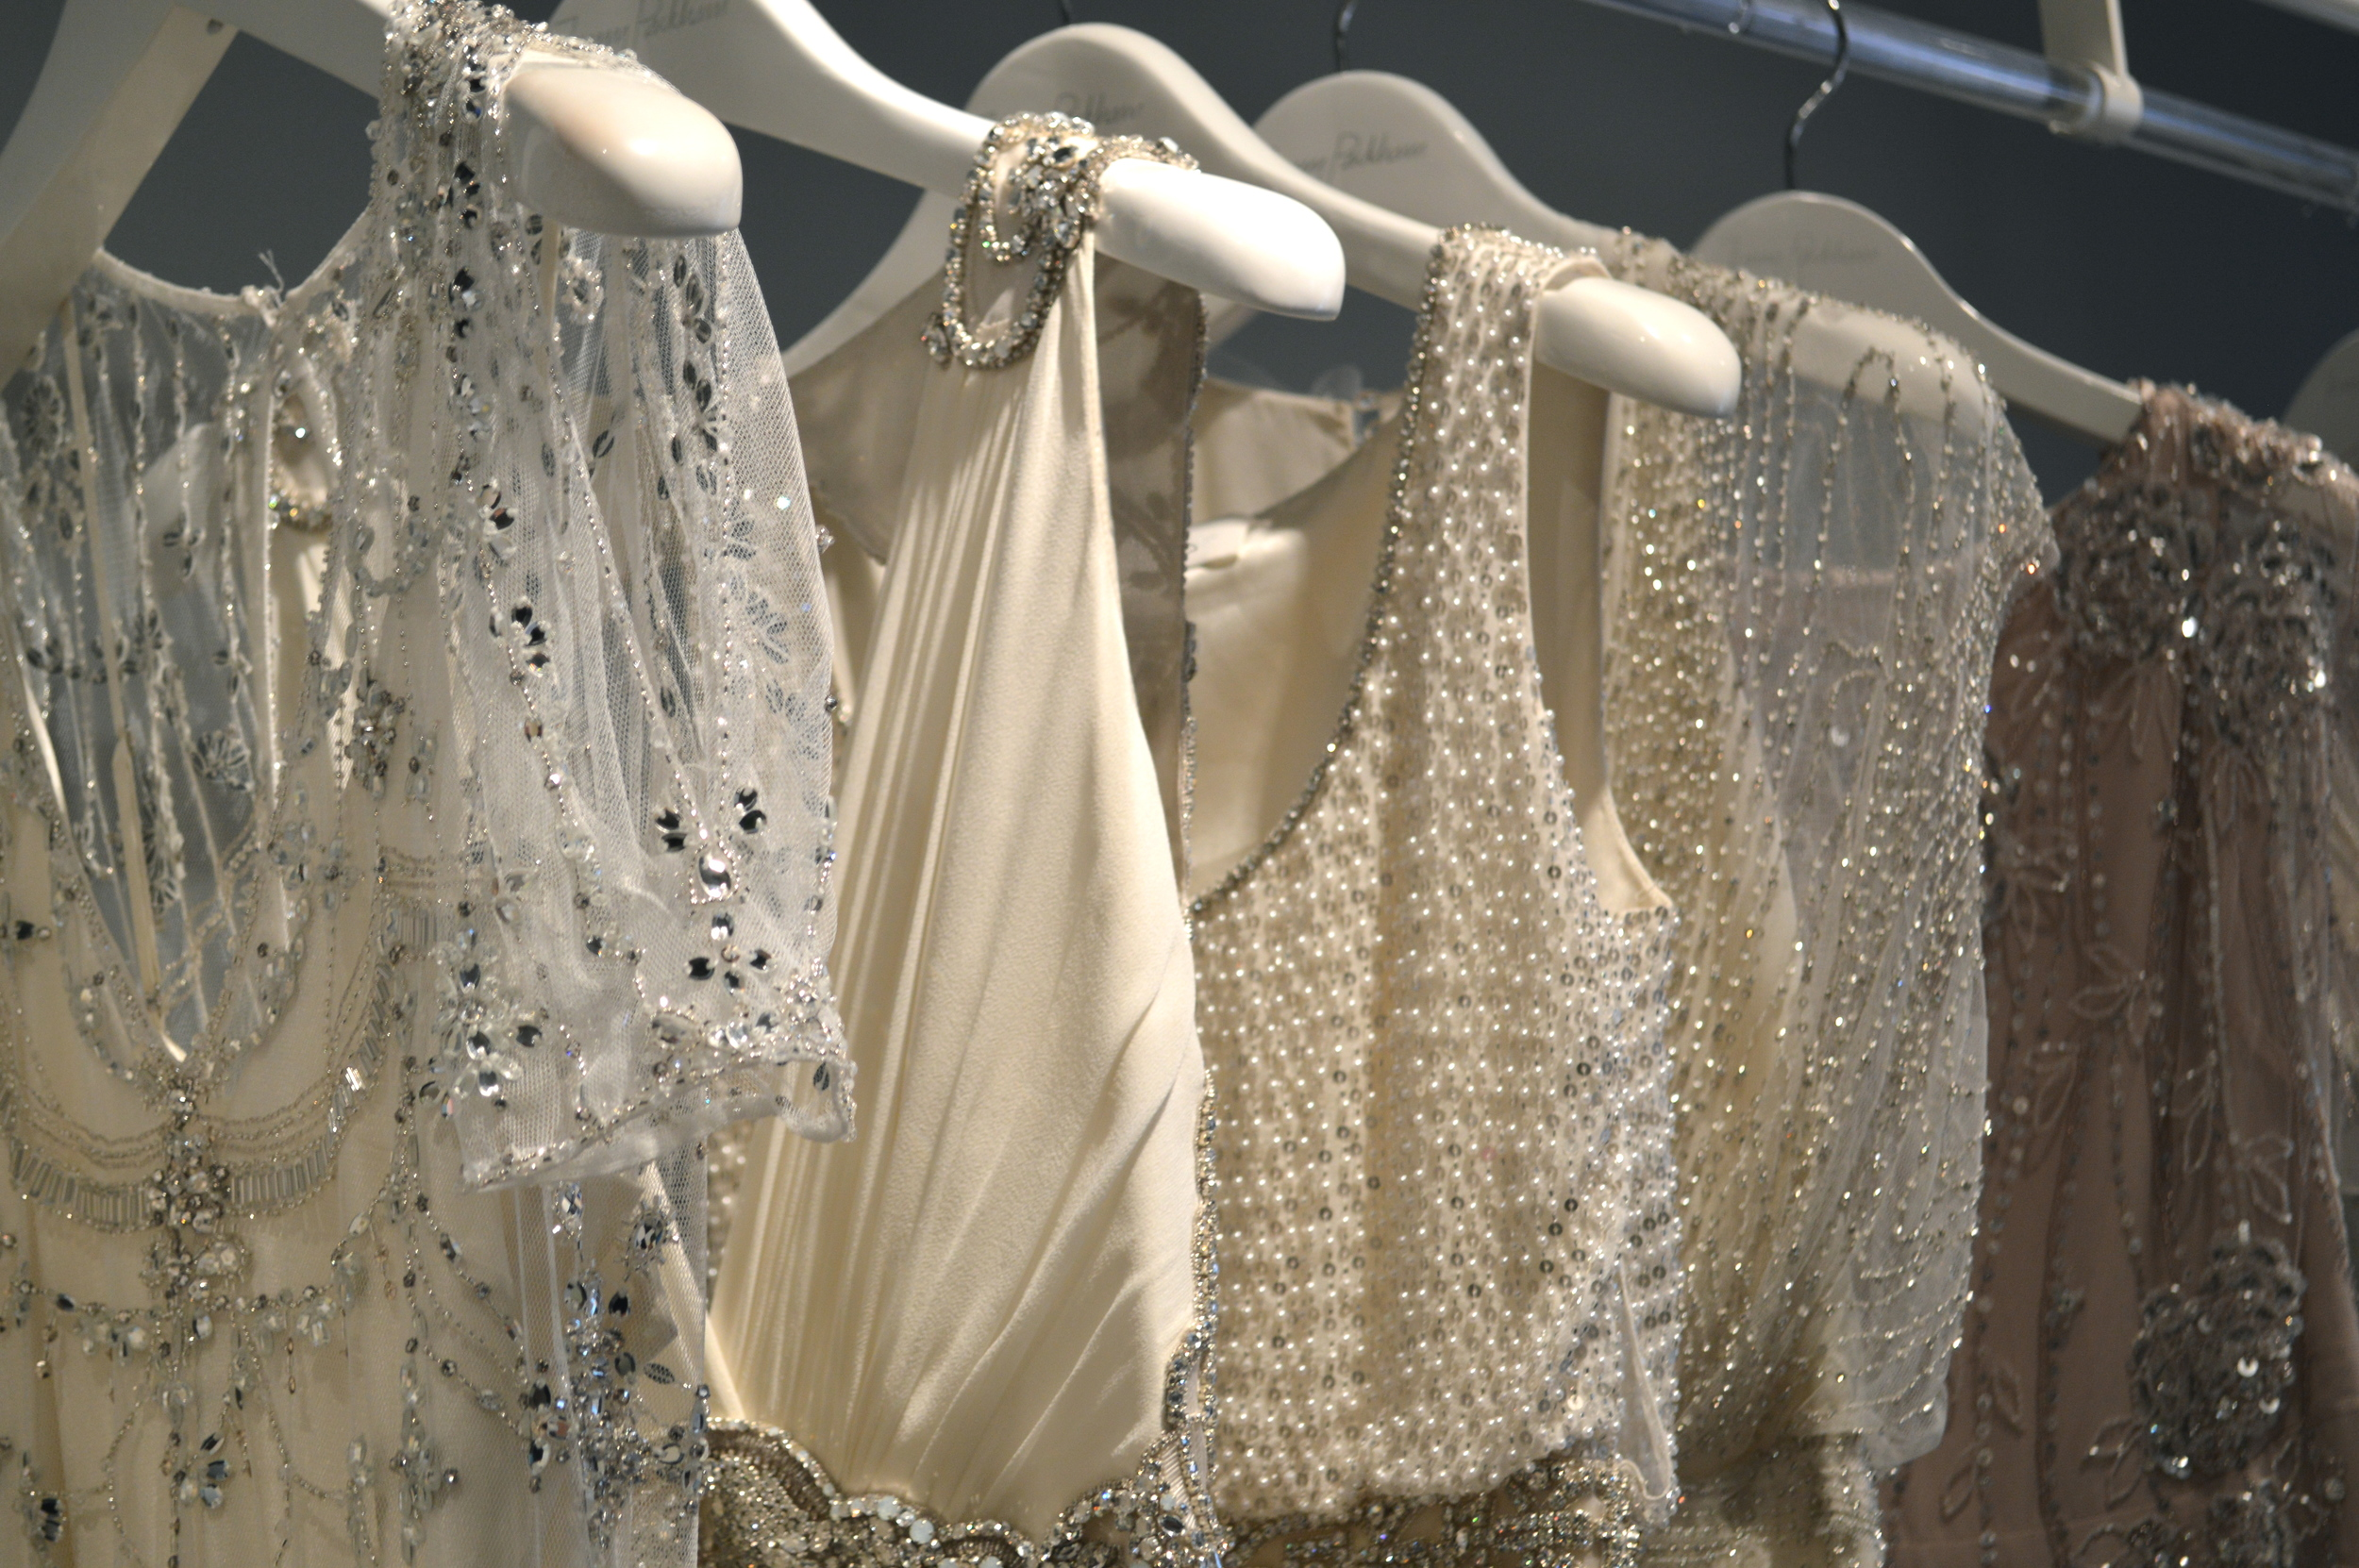 Picking out our new Jenny Packham gowns is like being a kid in a candy shop!